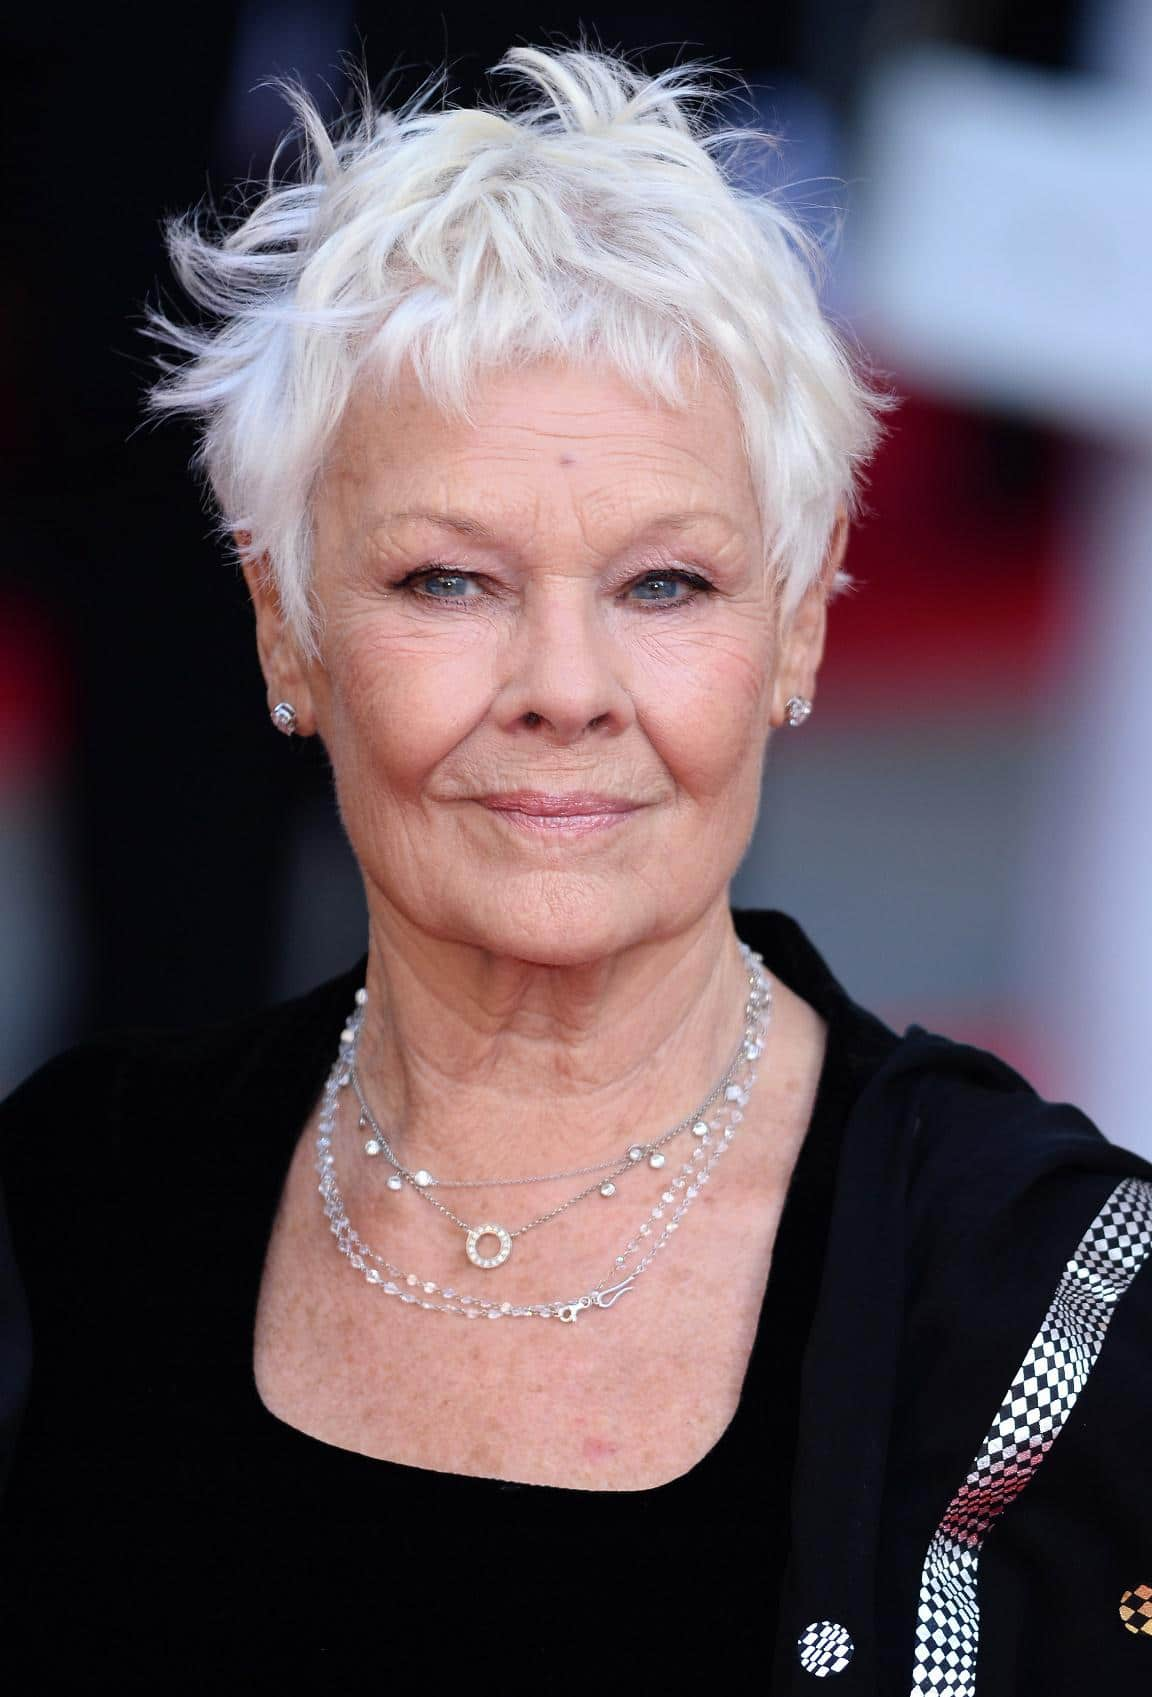 Judi Dench's choppy pixie